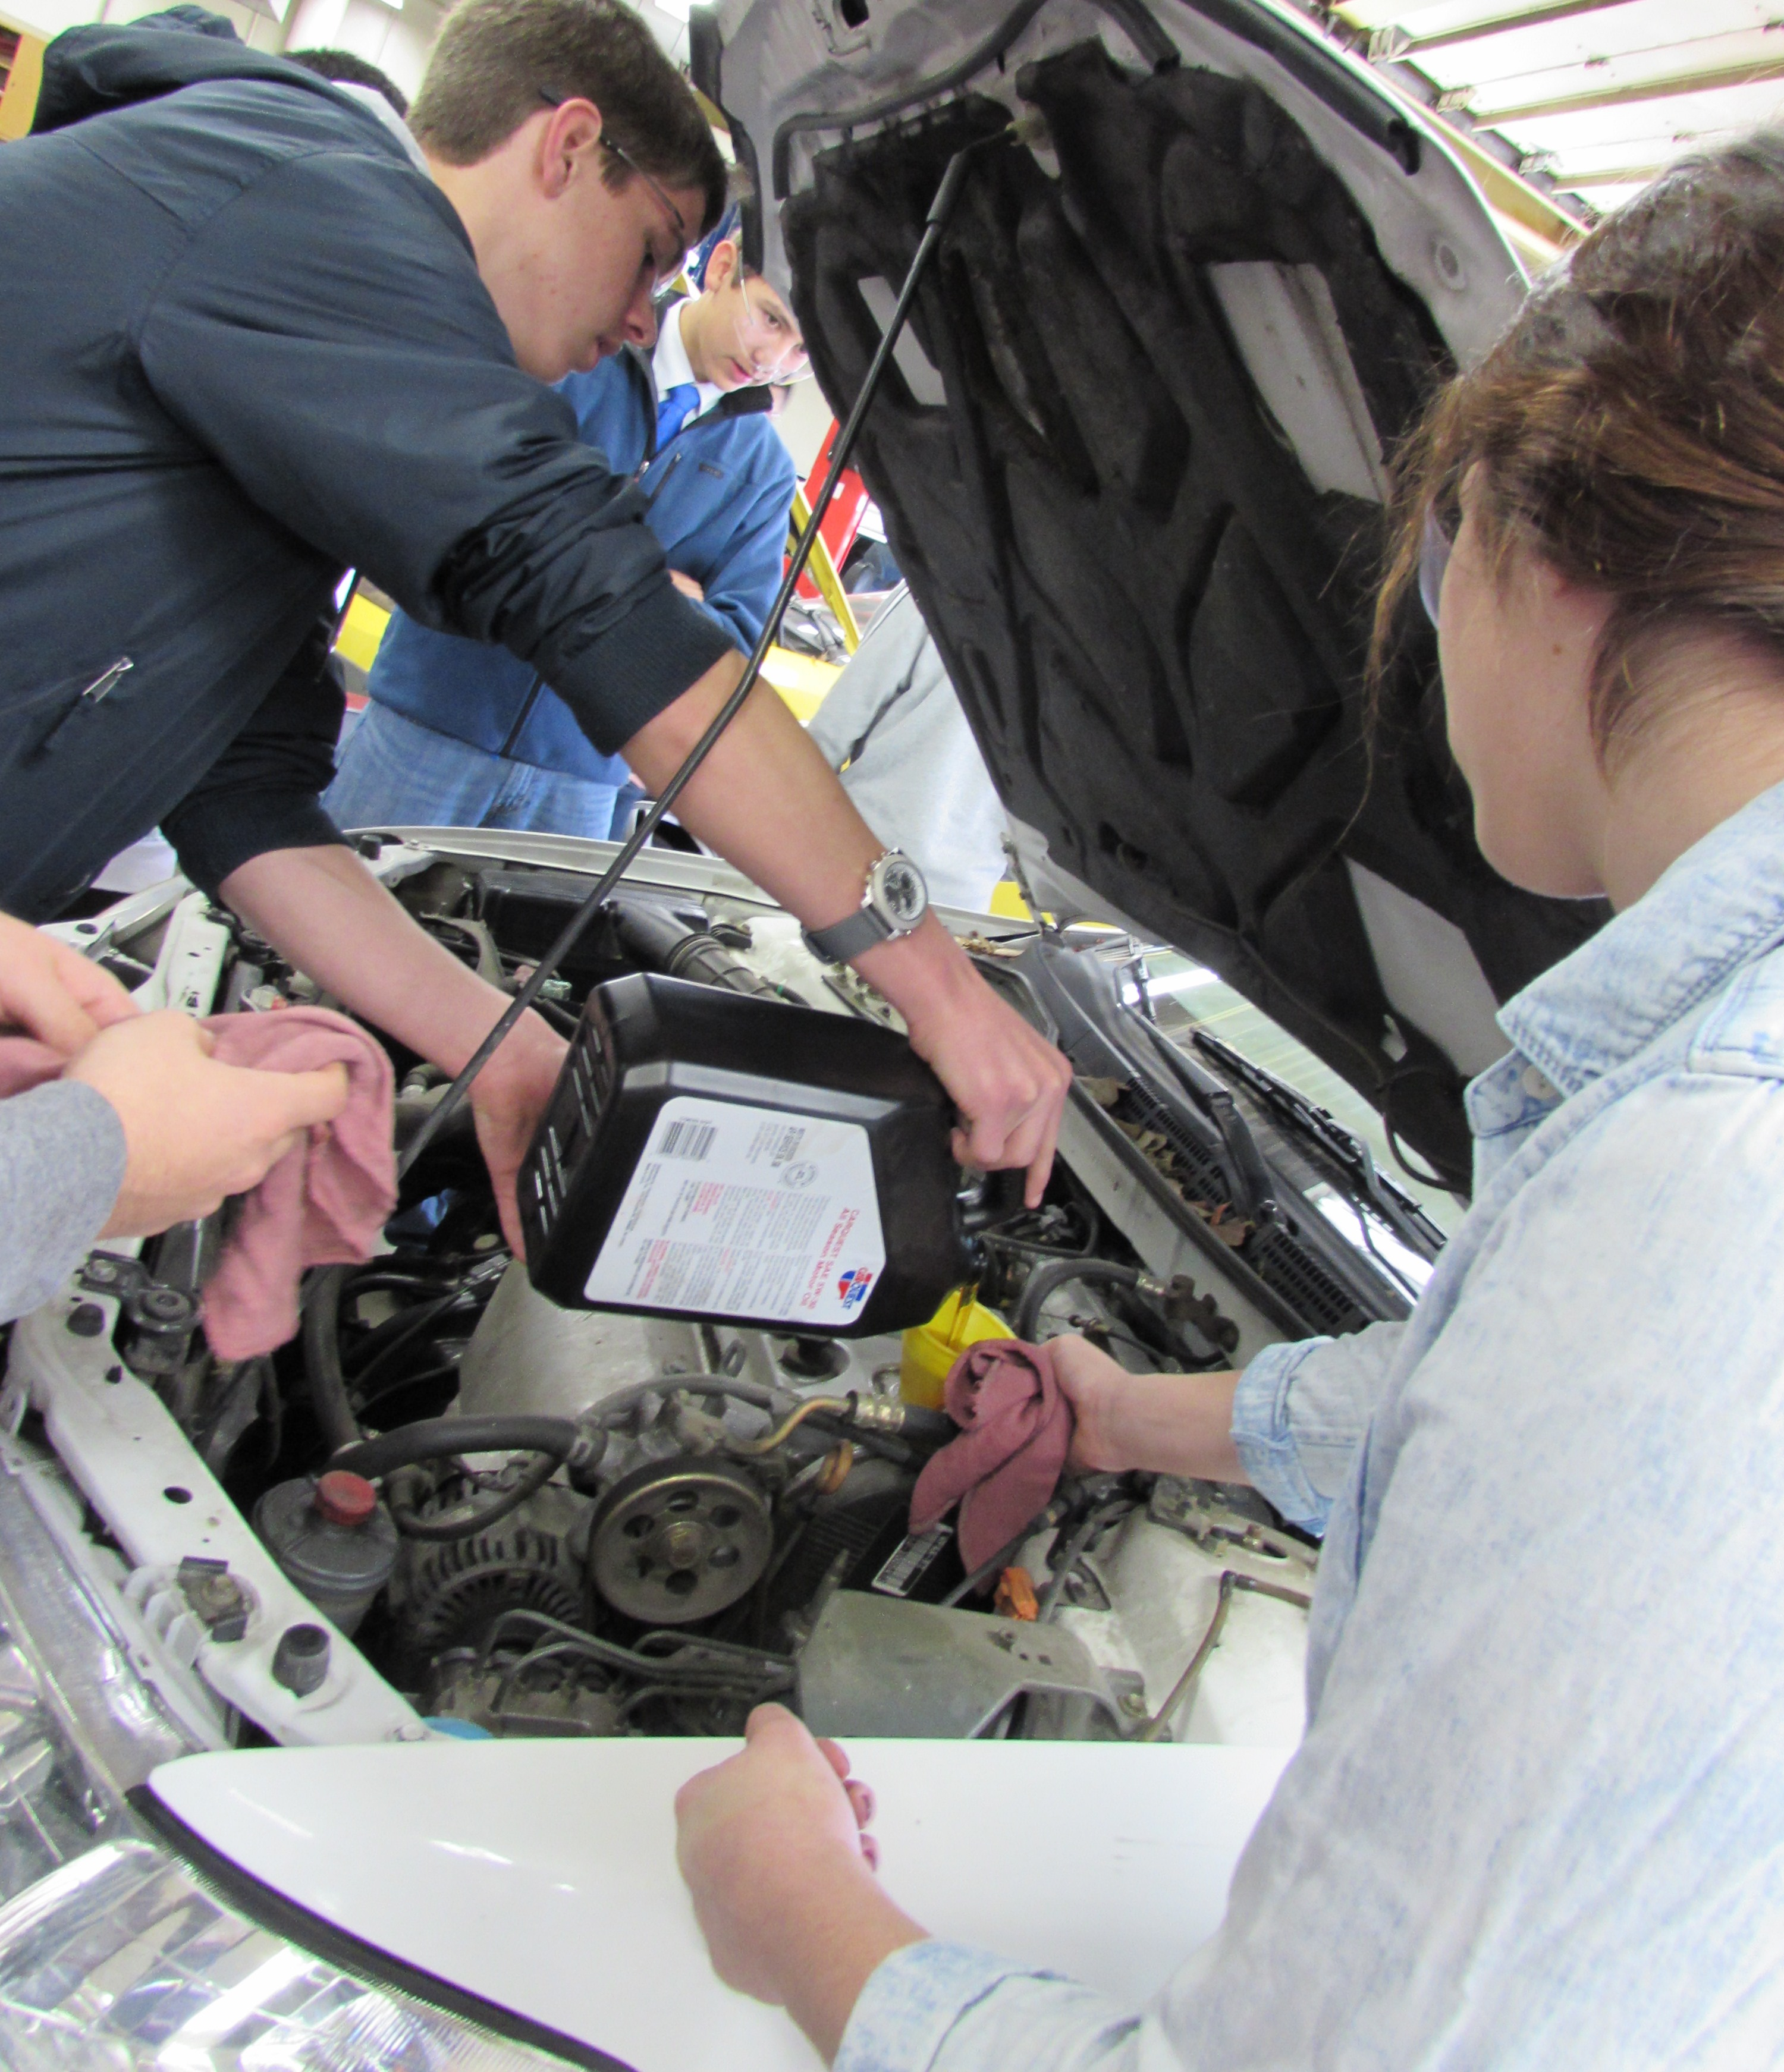 Students in Robert Thayer's second period Basic Auto class change the oil in a shop car. Photo by Chloe Sommer